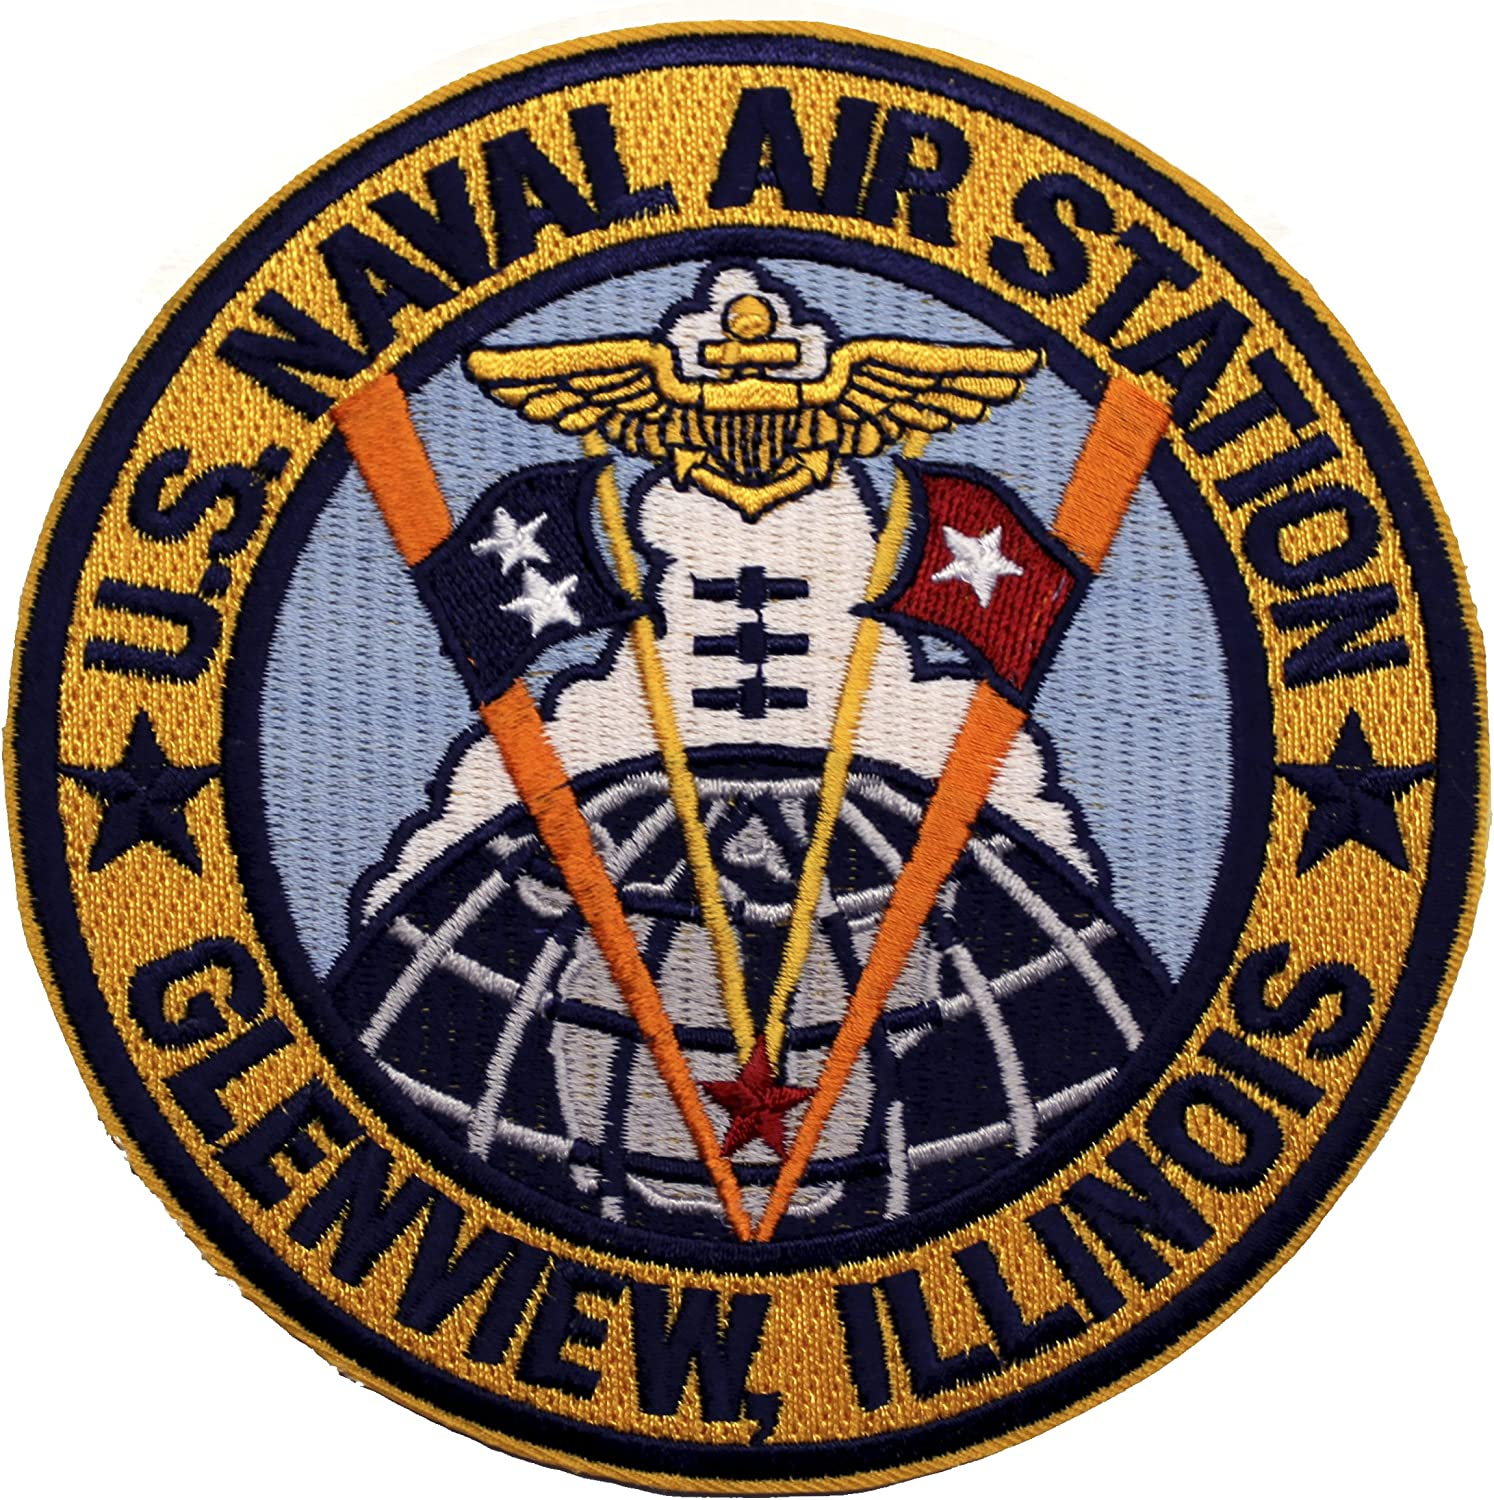 Naval Free shipping We OFFer at cheap prices New Air Station Patch Glenview Illinois